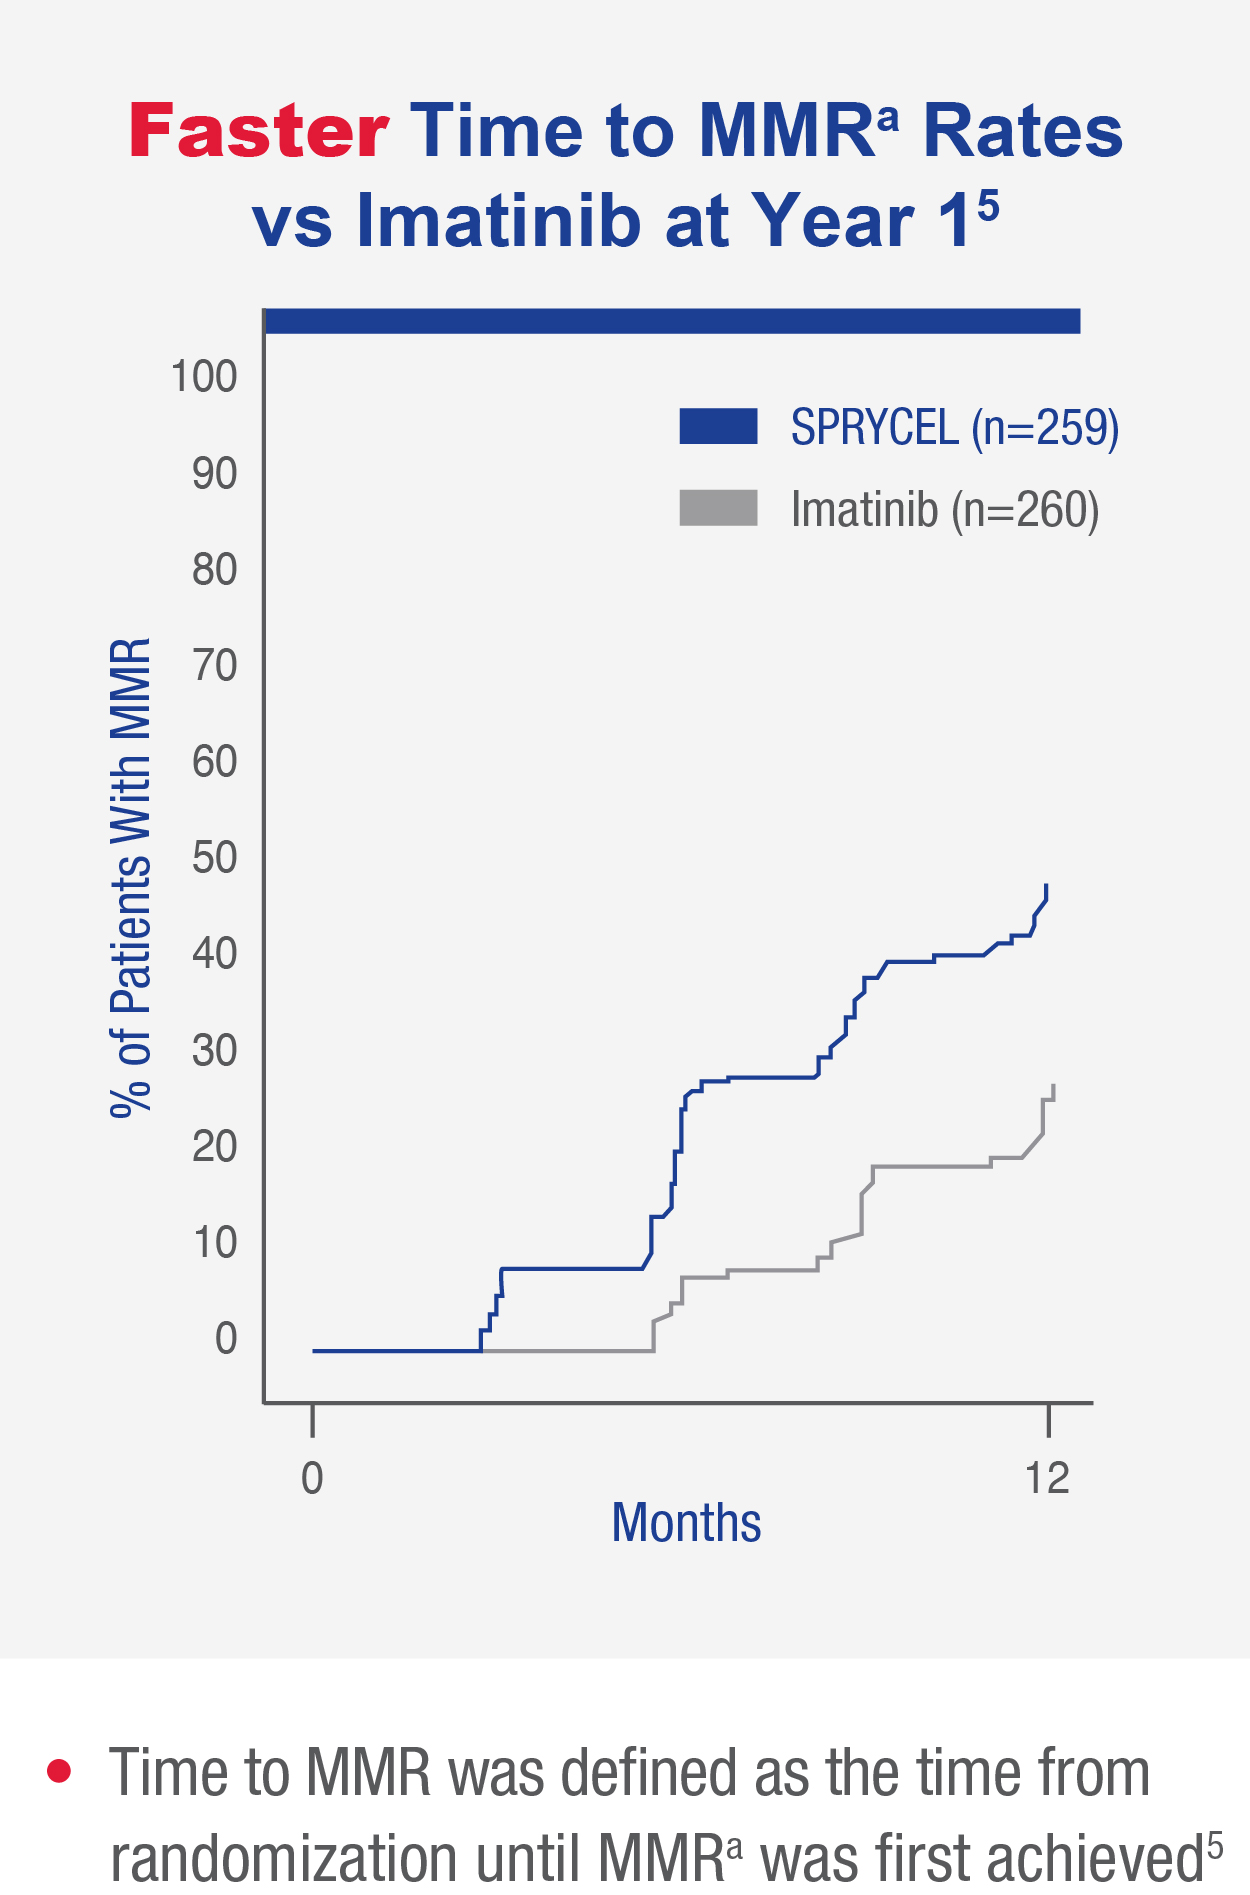 Chart shows SPRYCEL faster time to MMR rates vs Imatinib at 1 year.